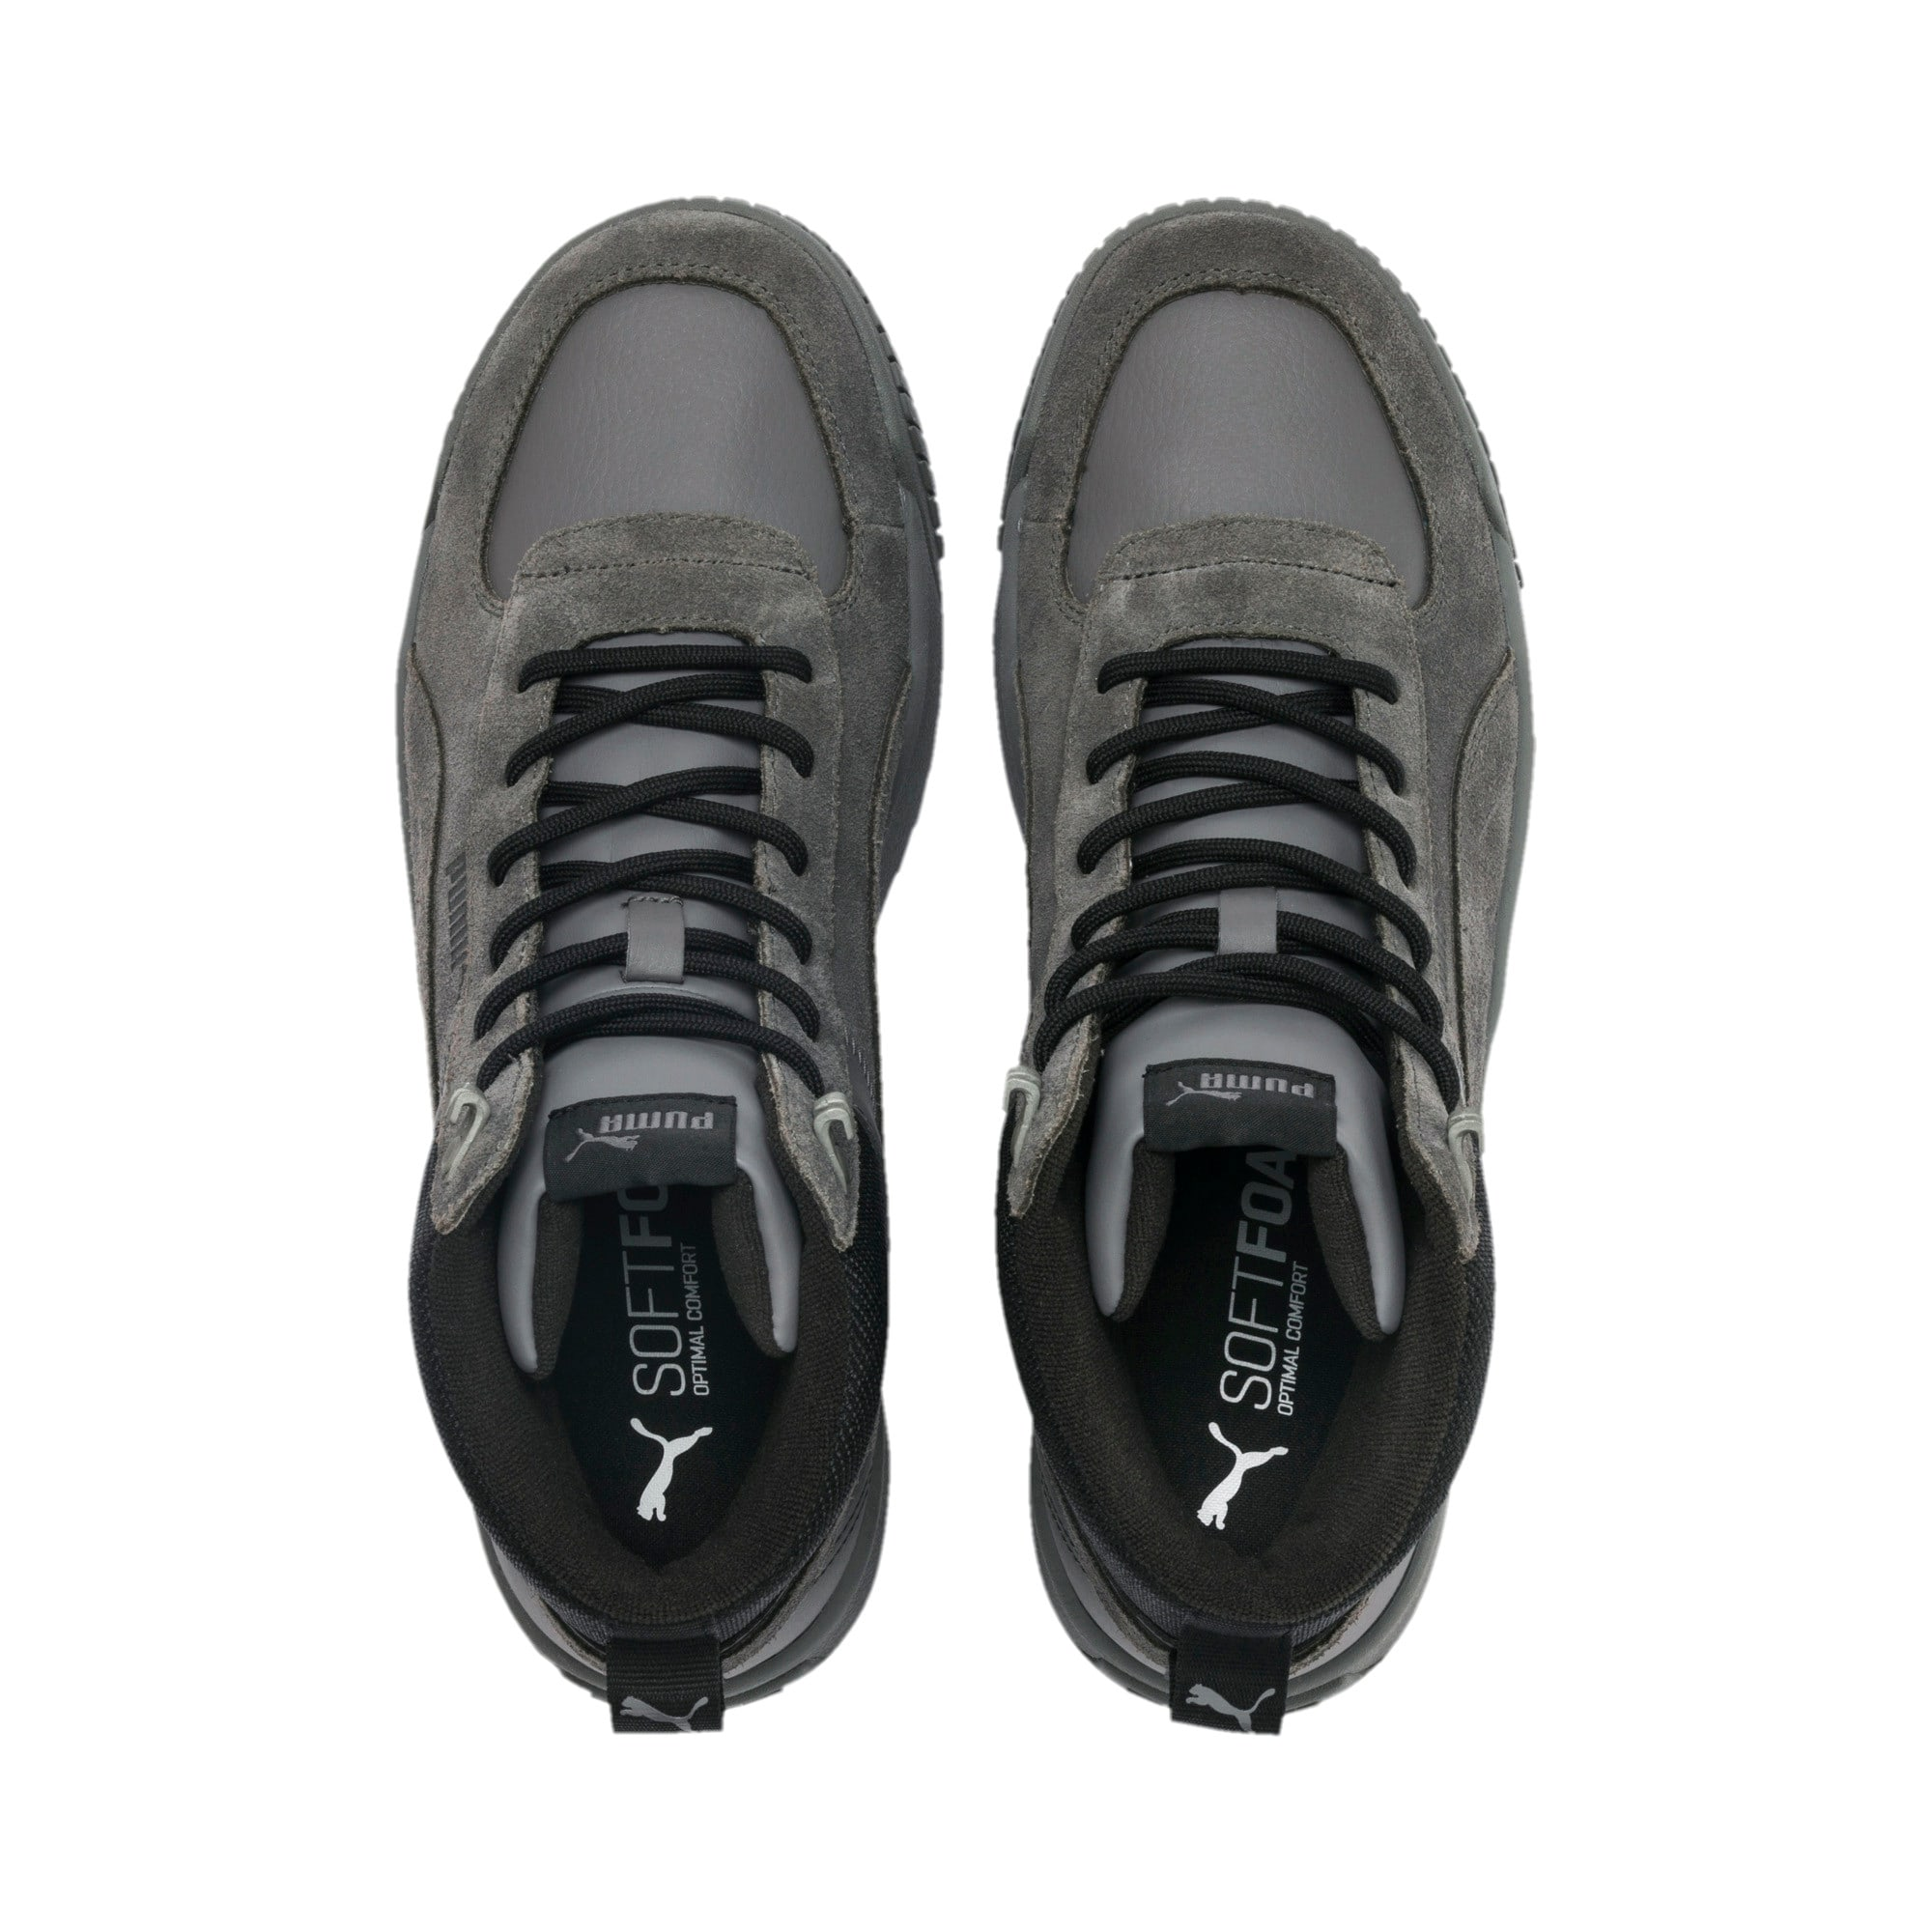 Thumbnail 7 of Tarrenz Sneaker Boots, CASTLEROCK-Puma Black, medium